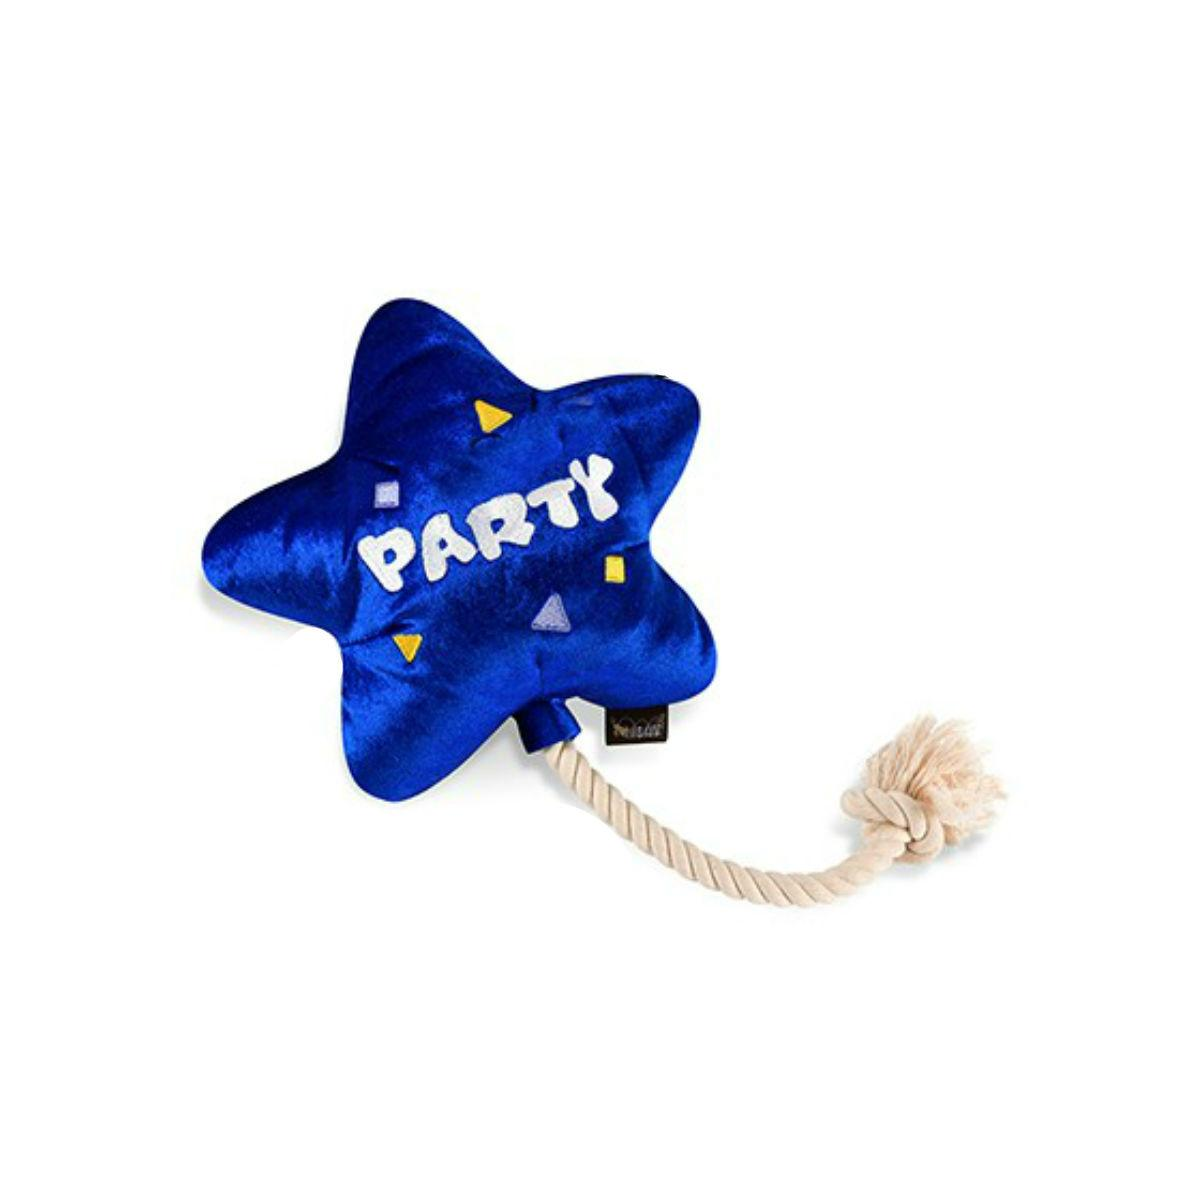 P.L.A.Y. Party Time Dog Toy - Balloon